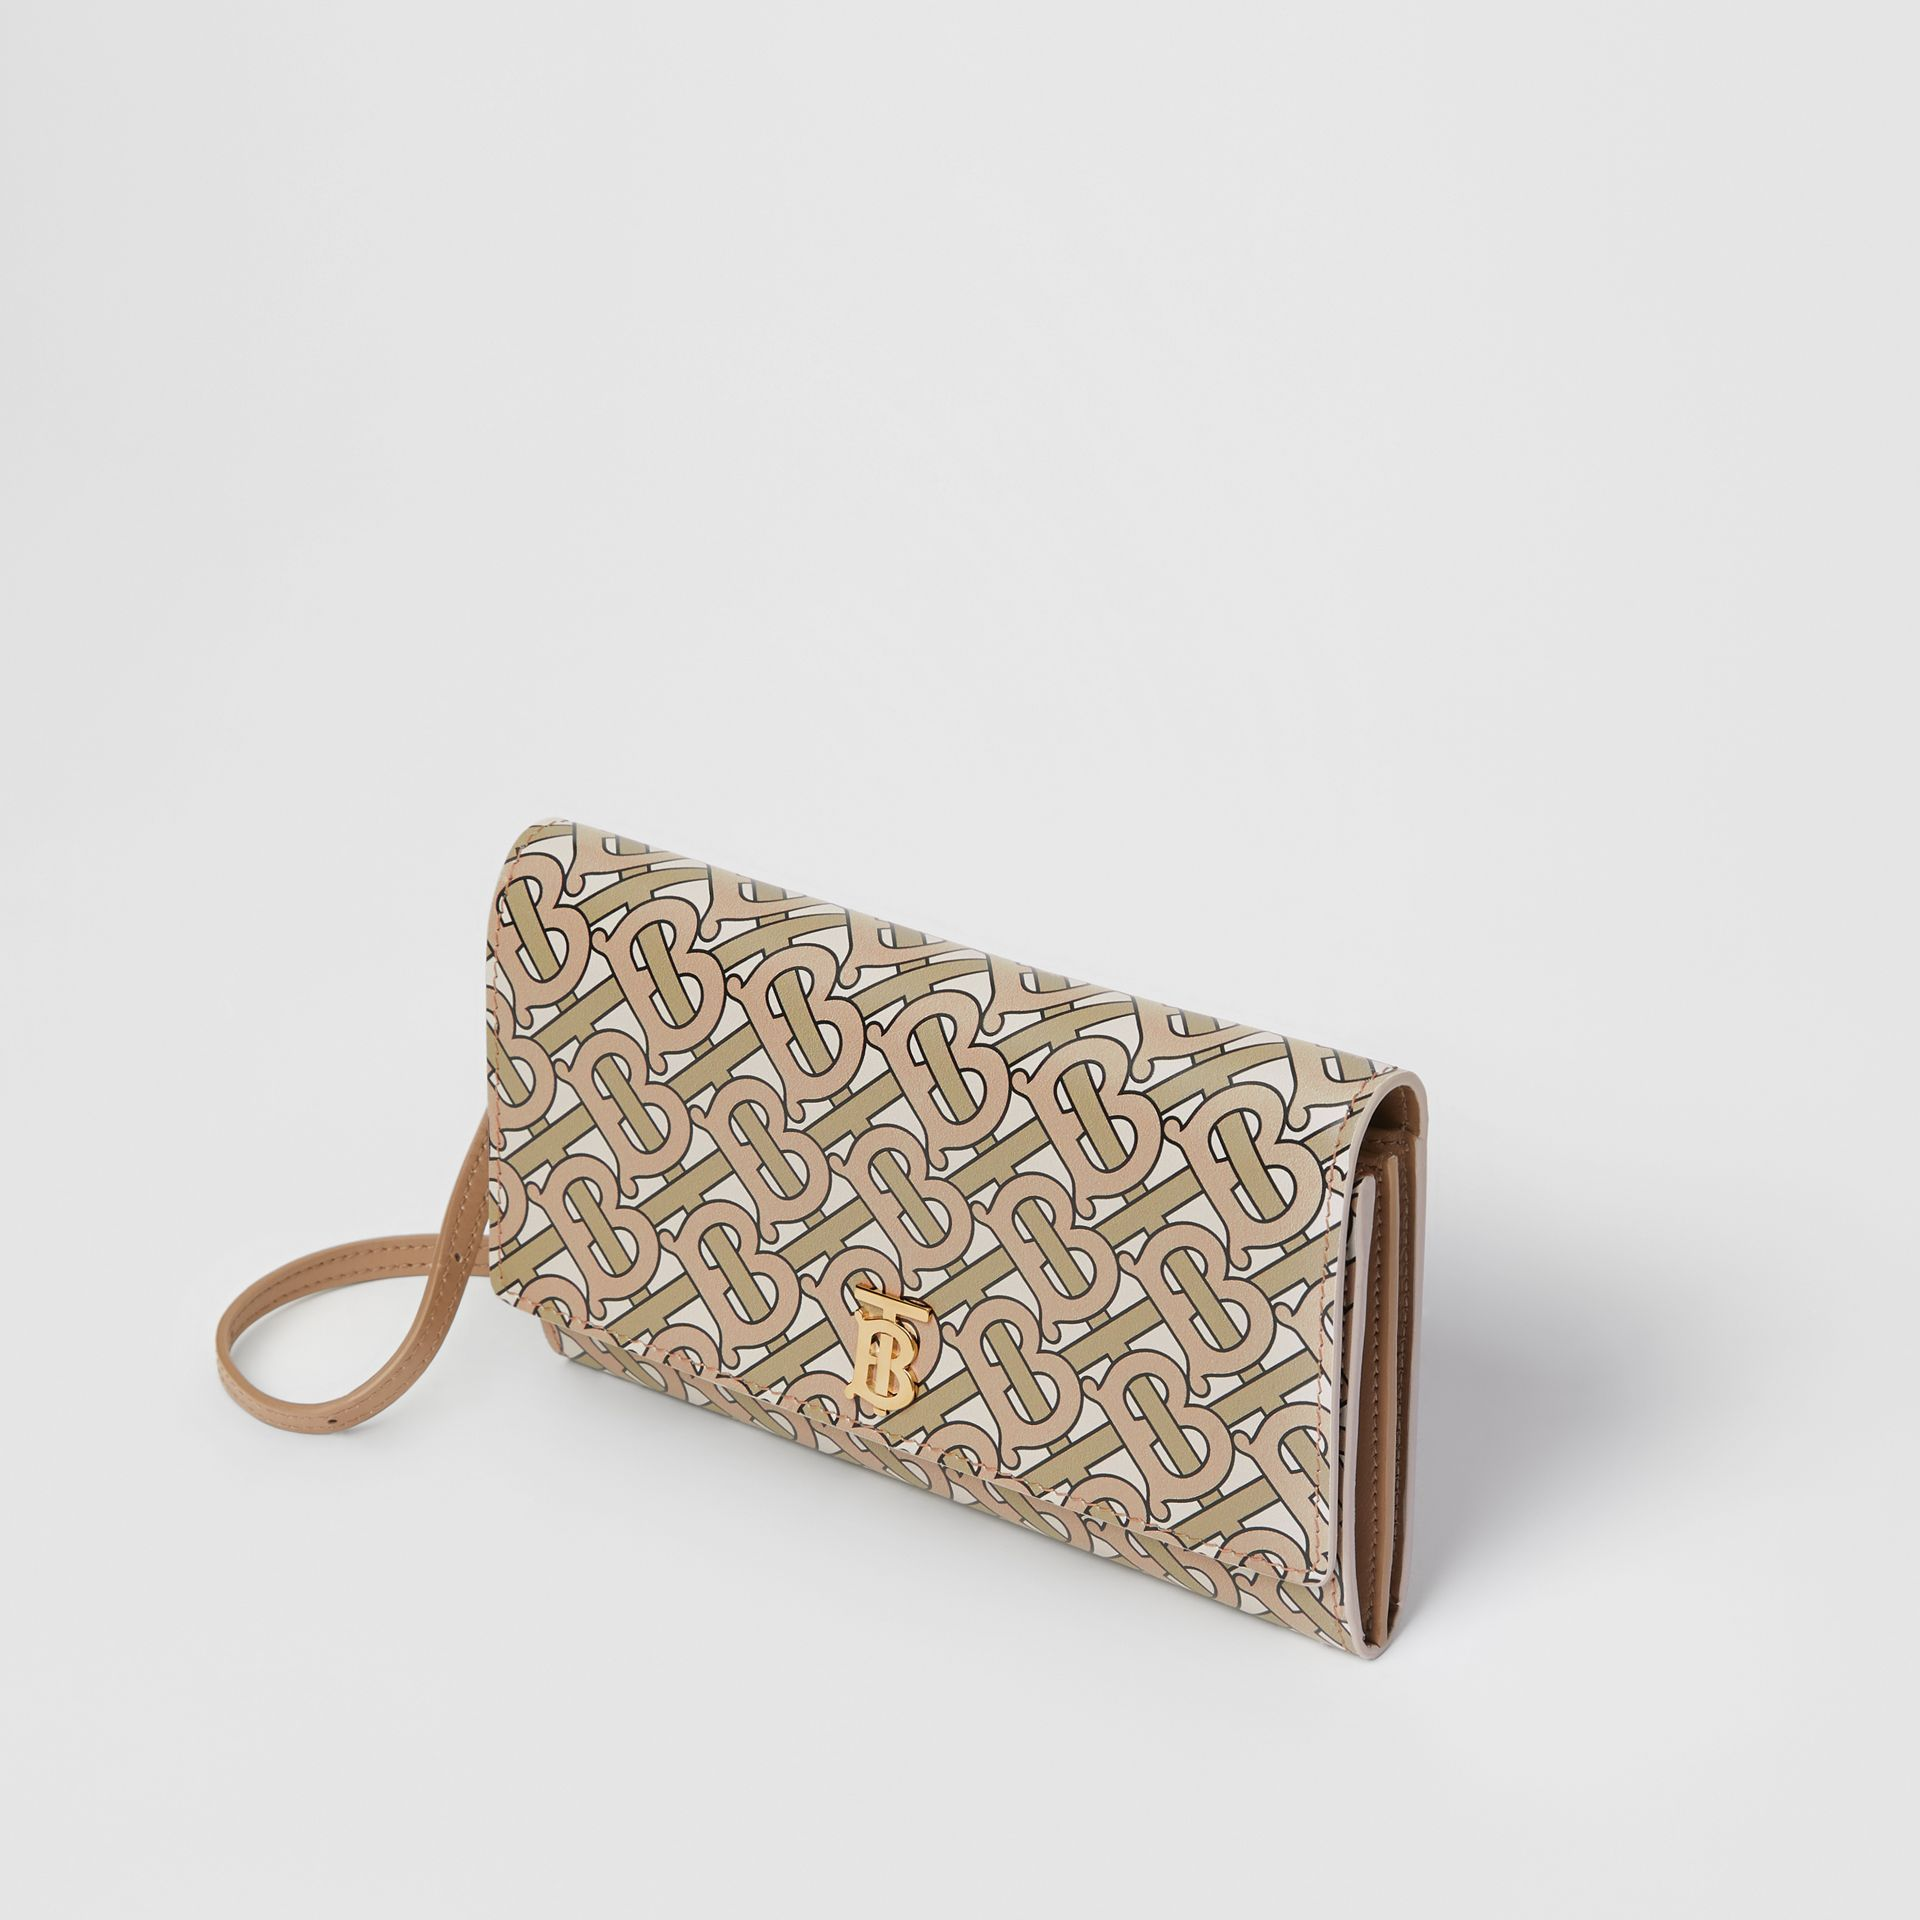 Portefeuille en cuir Monogram avec sangle amovible (Beige) - Femme | Burberry - photo de la galerie 3